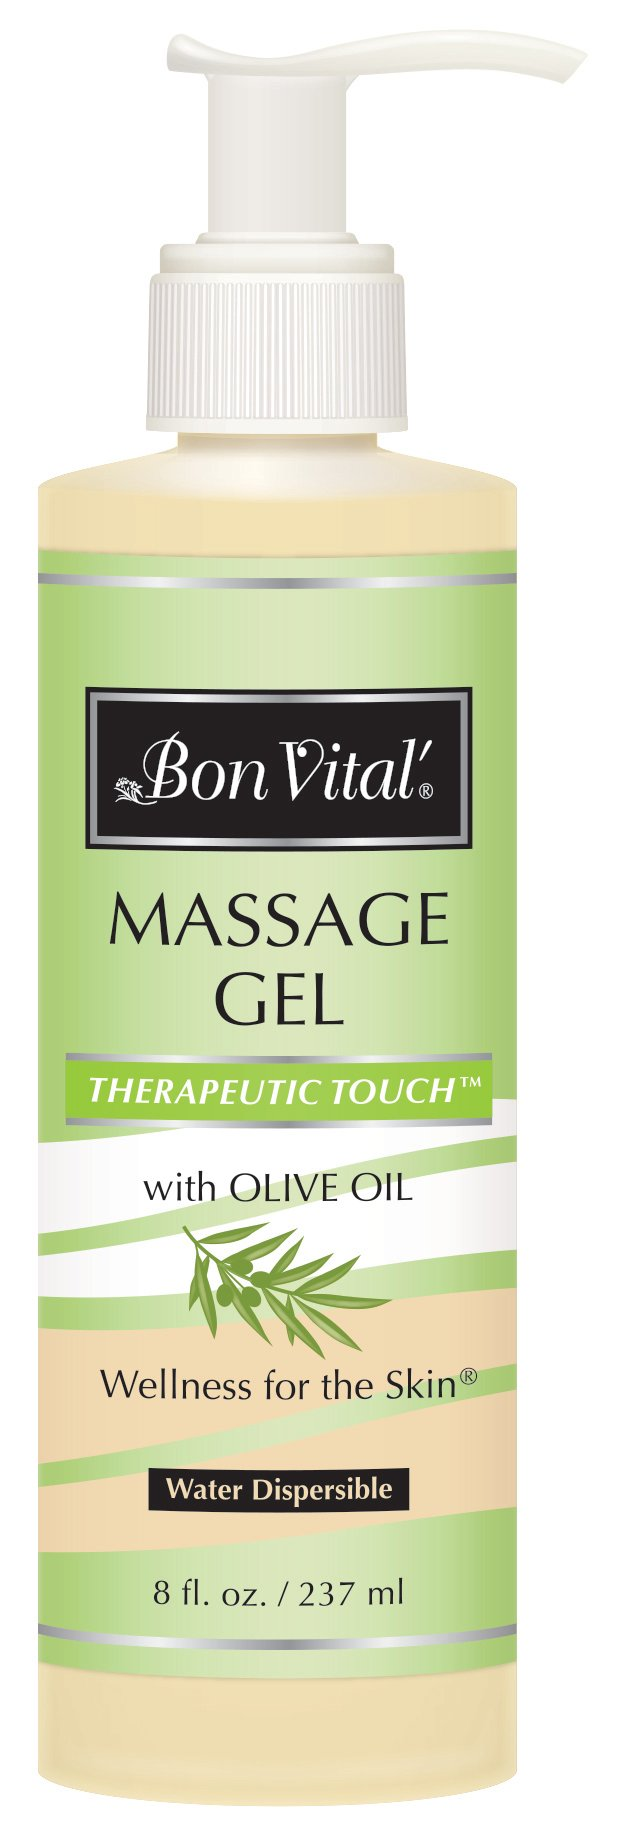 Bon Vital' Therapeutic Touch Massage Gel Made with Olive Oil to Repair Dry Skin and Soothe Sore Muscles, Contains Anti-Aging Properties to Calm Skin Inflammation and Reduce Apperance of Wrinkles, 8 Oz